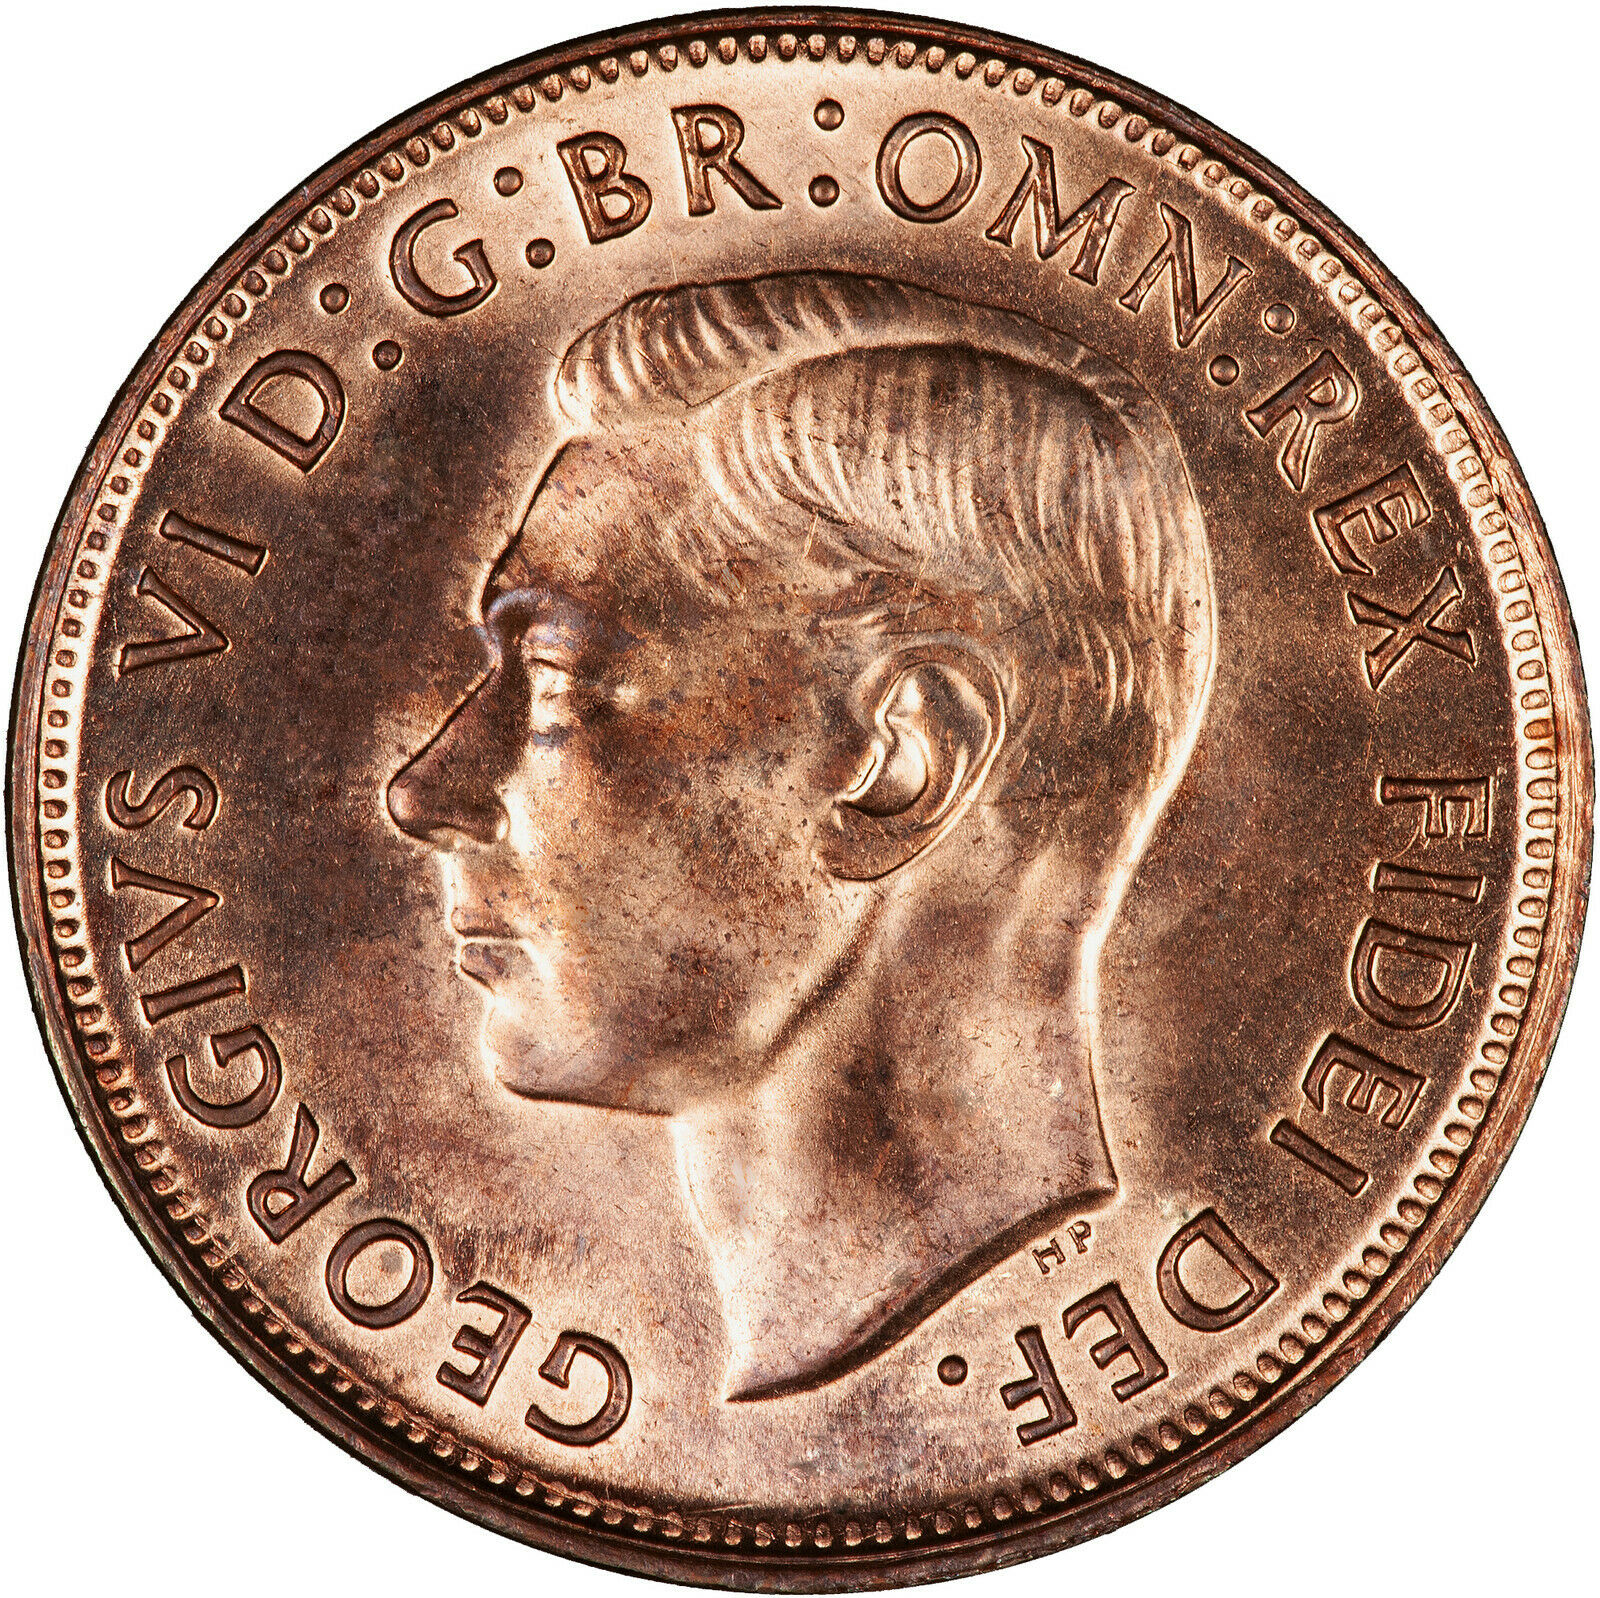 Penny 1949, Coin from Australia - Online Coin Club